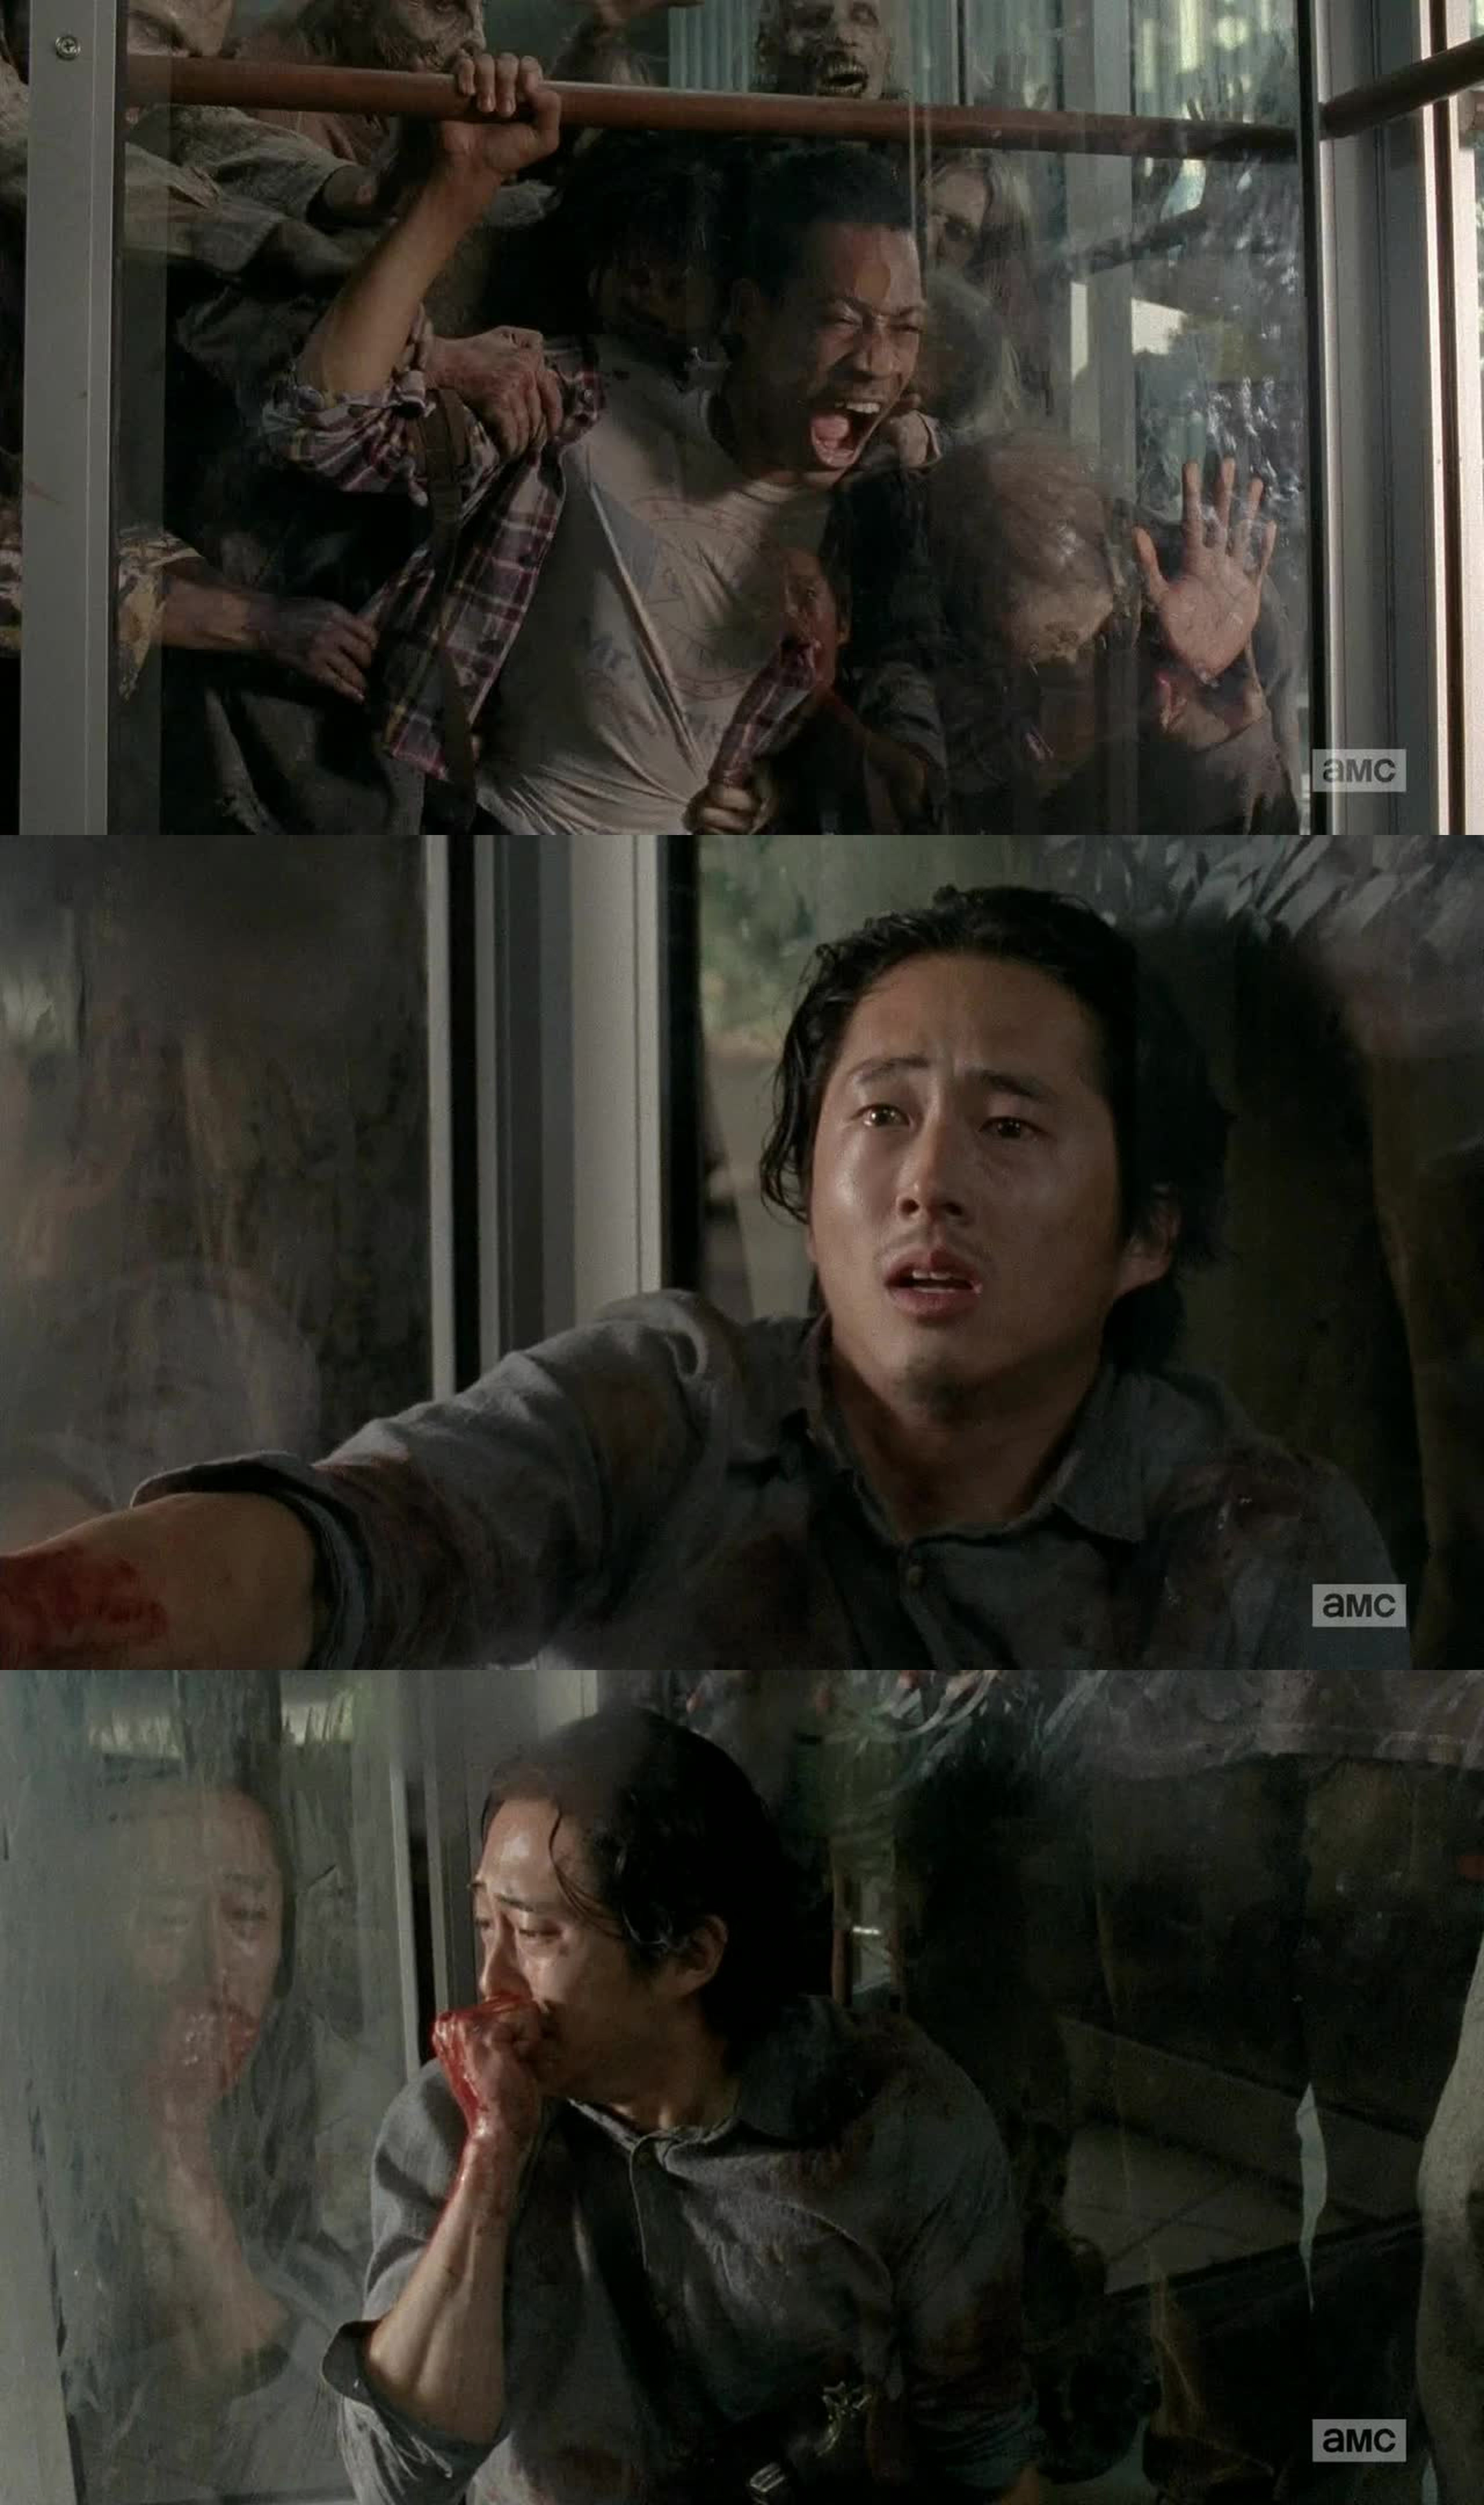 This episode was so crazy. Dont even know where to start. at first there was some hope. Then slowly things started to happen.  I mean. the look on Glenn's face when Noah died. So sad!